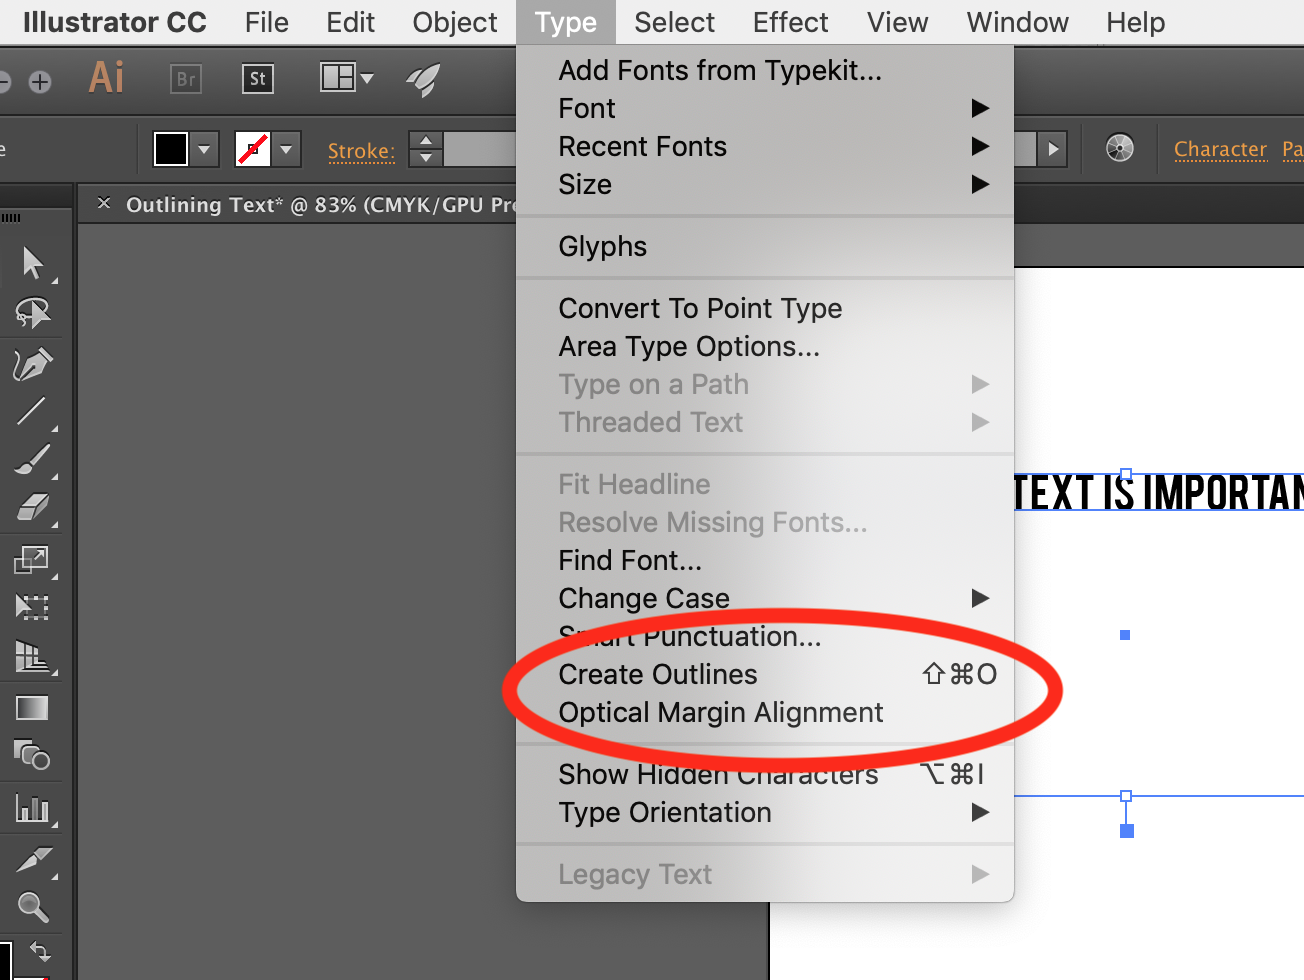 How to outline text in Adobe Illustrator